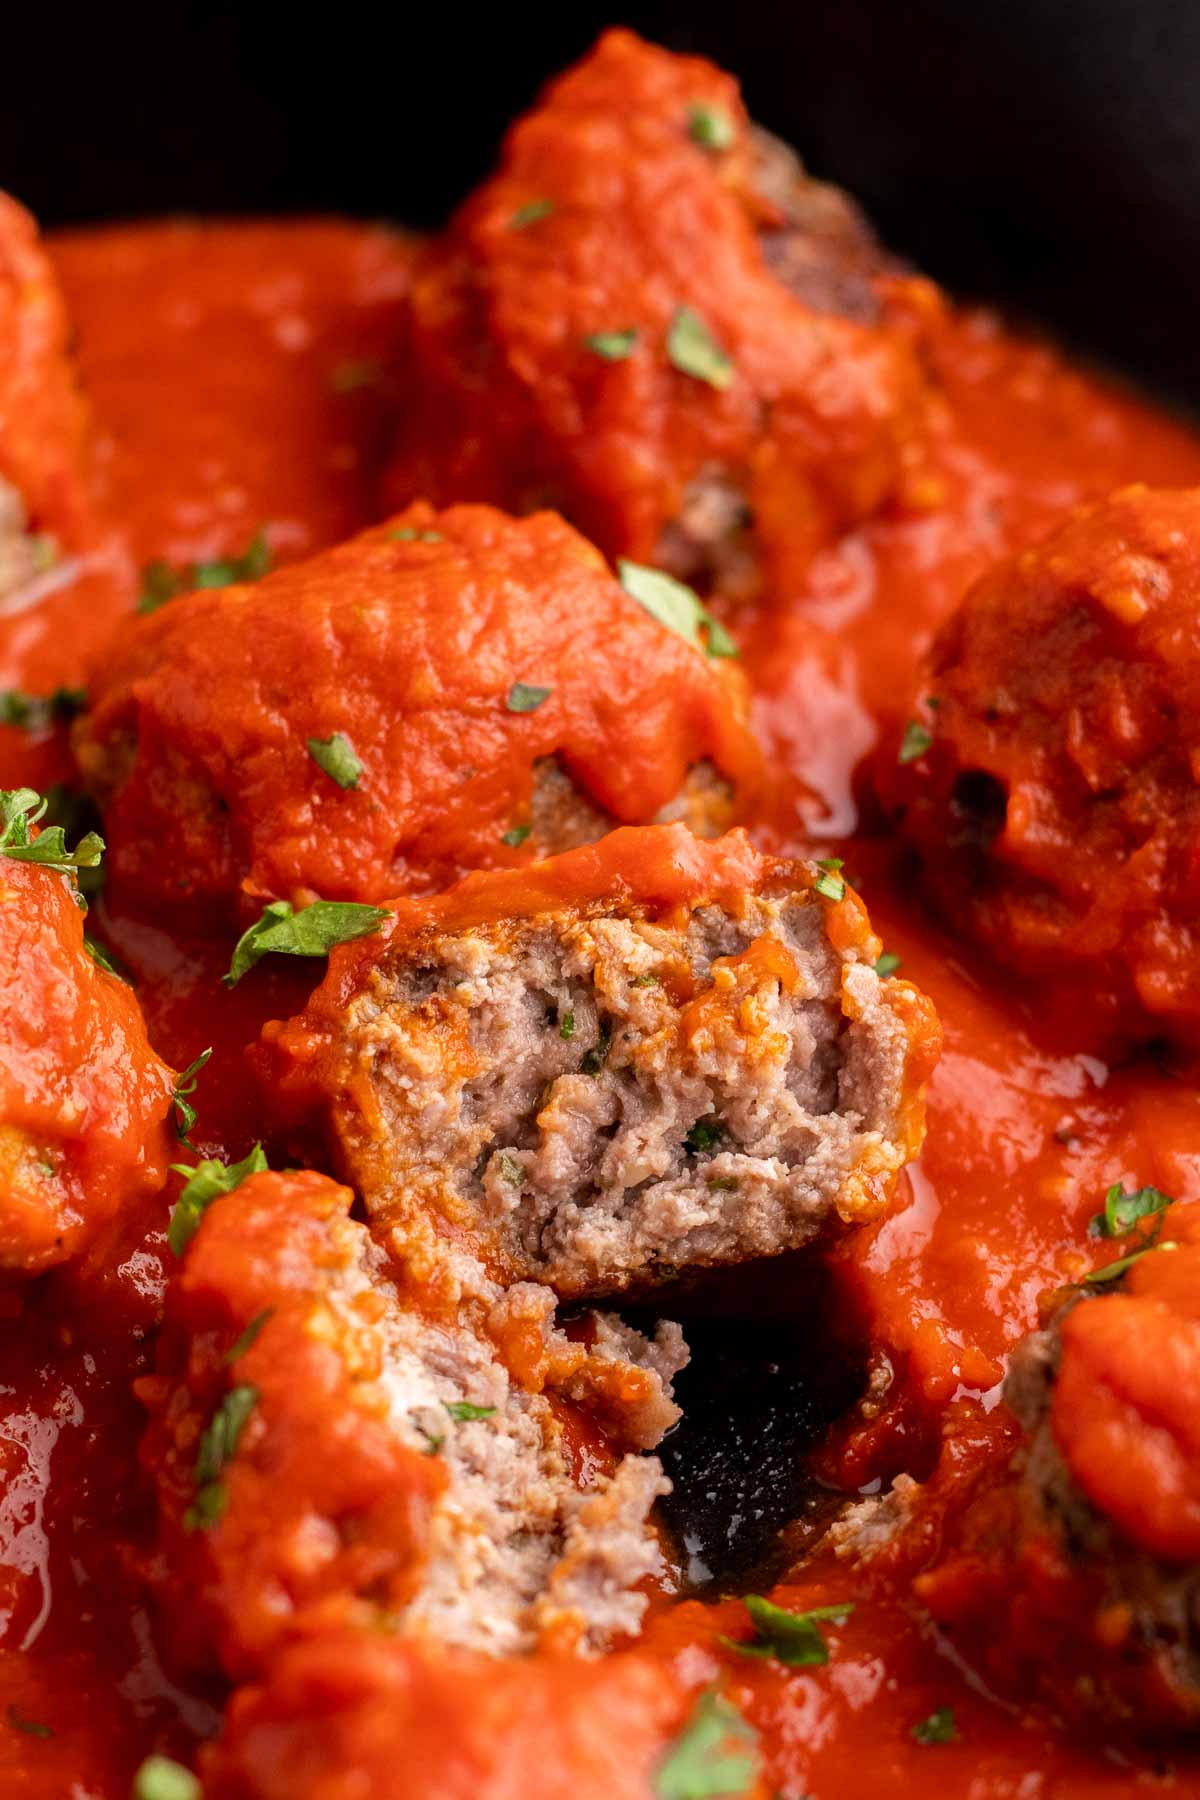 Close-up of meatballs with one cut in half